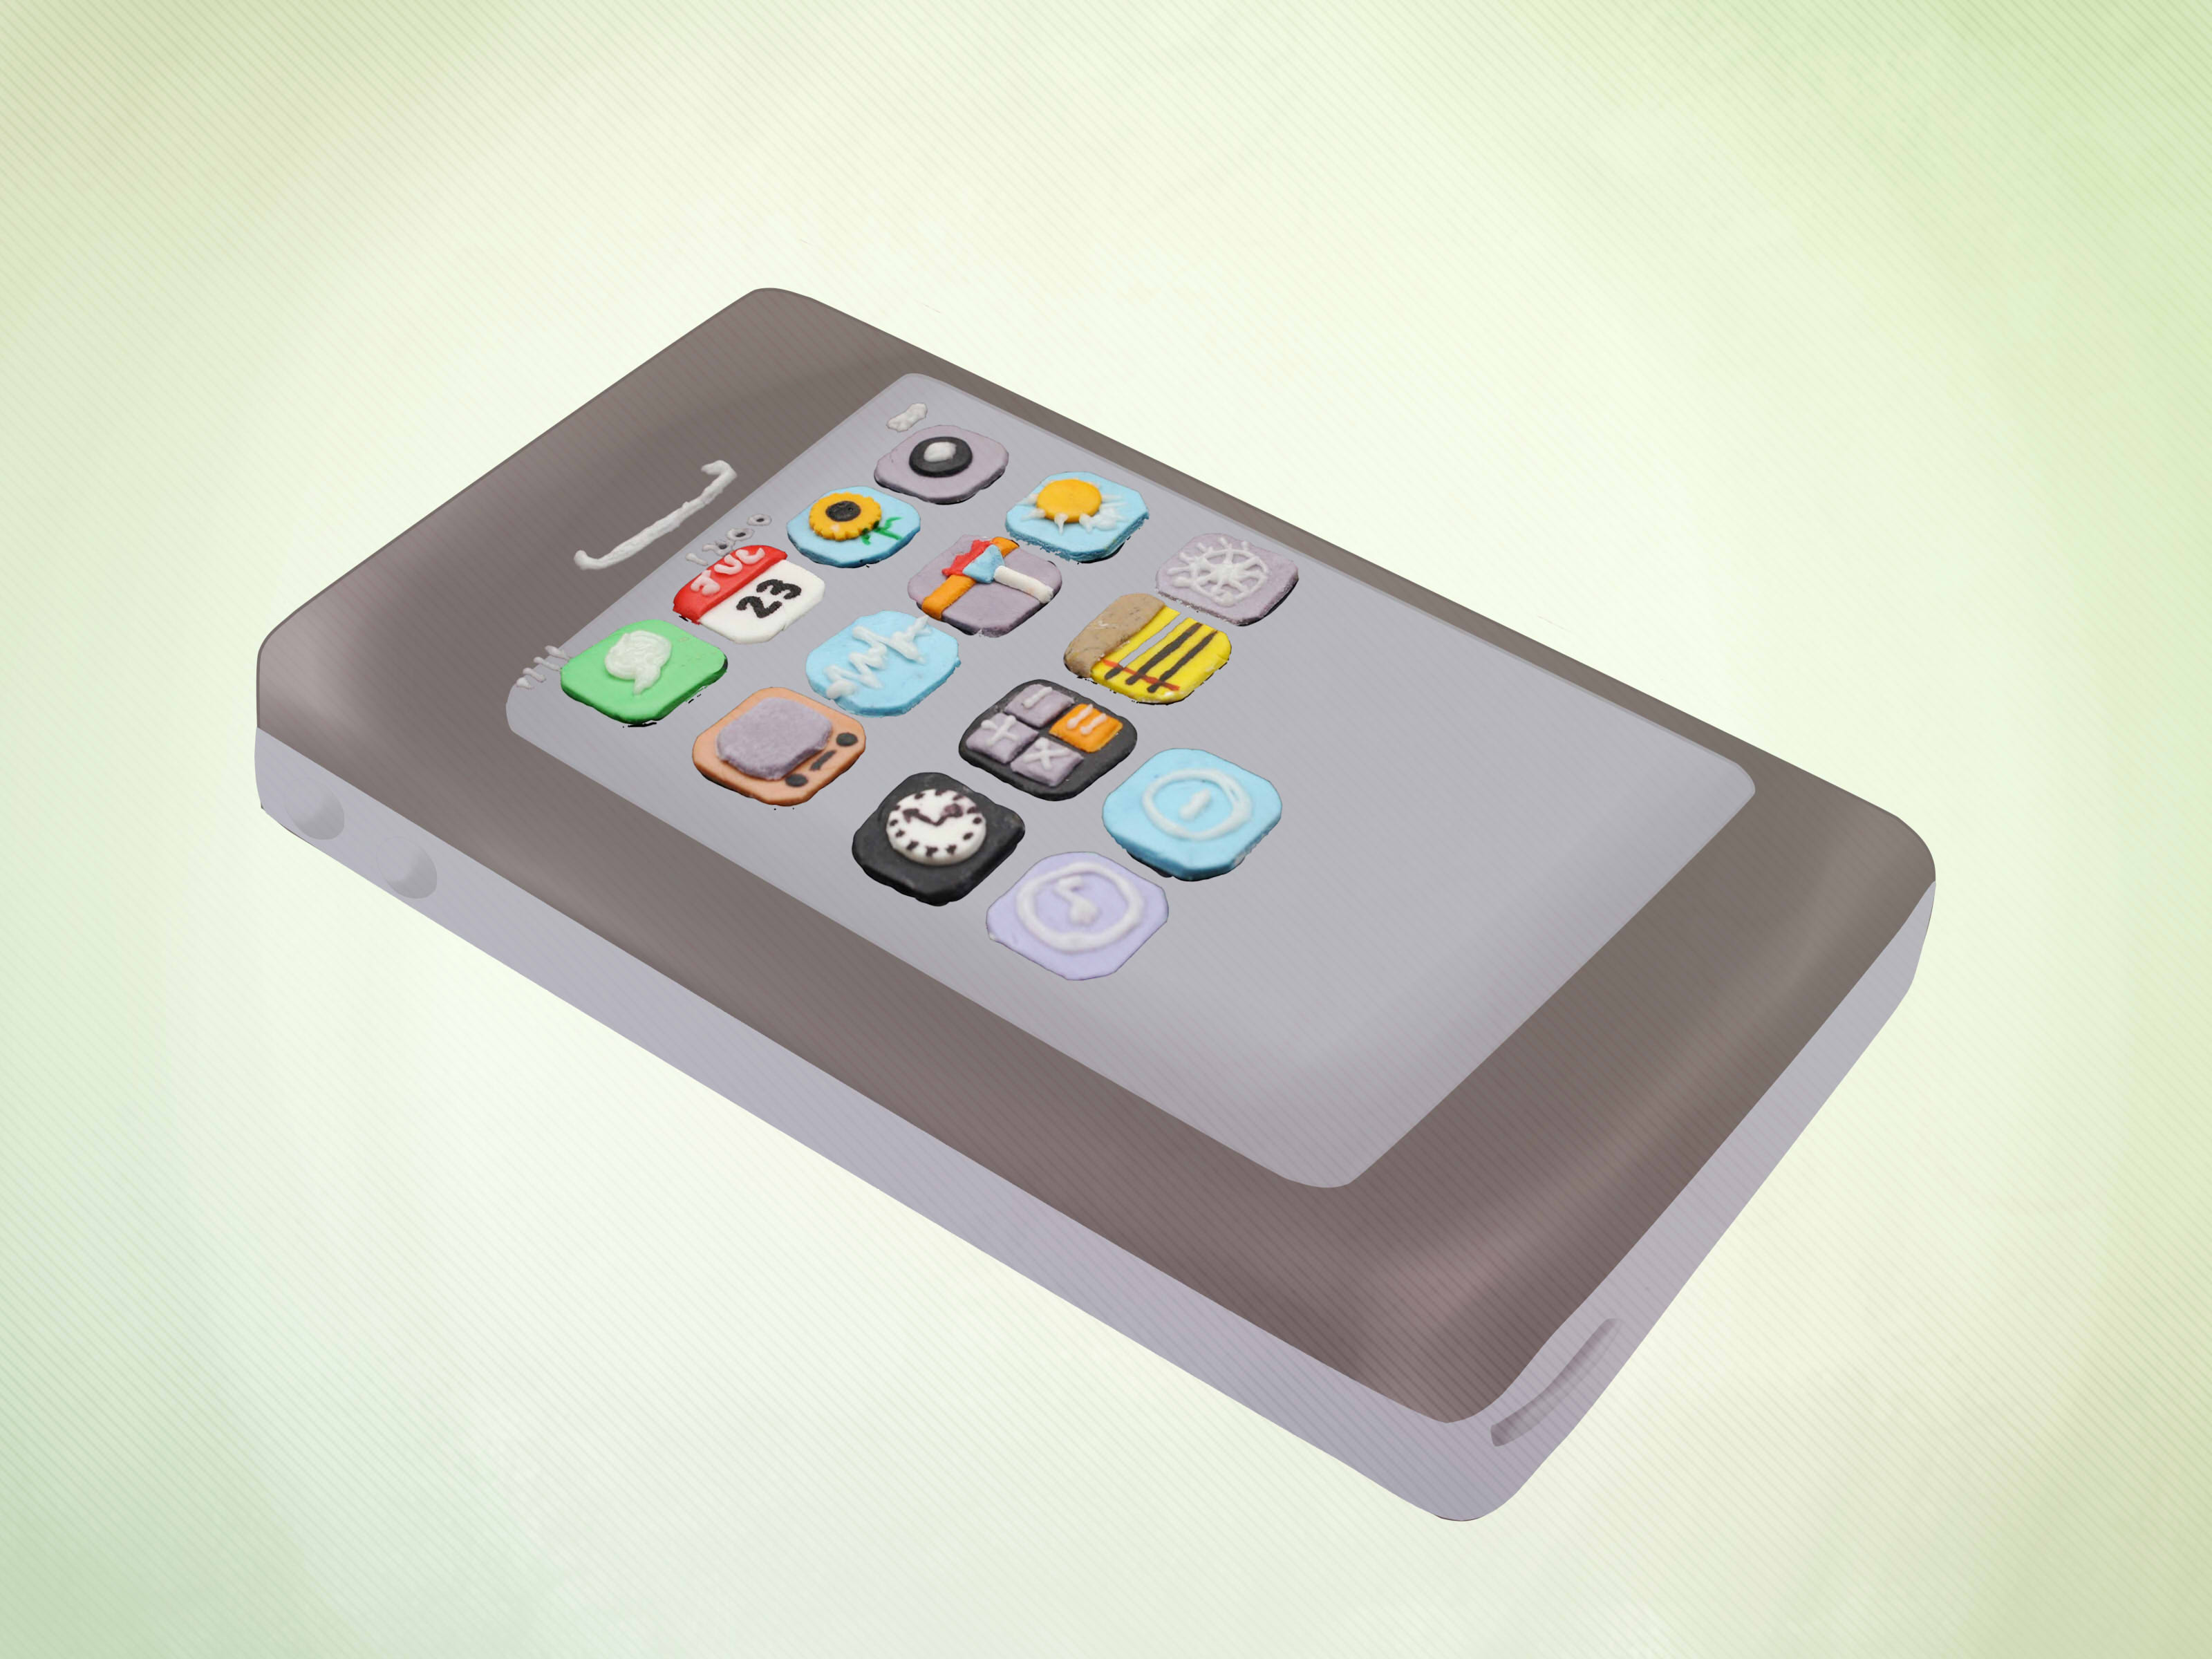 How To Make An Iphone Cake 15 Steps With Pictures